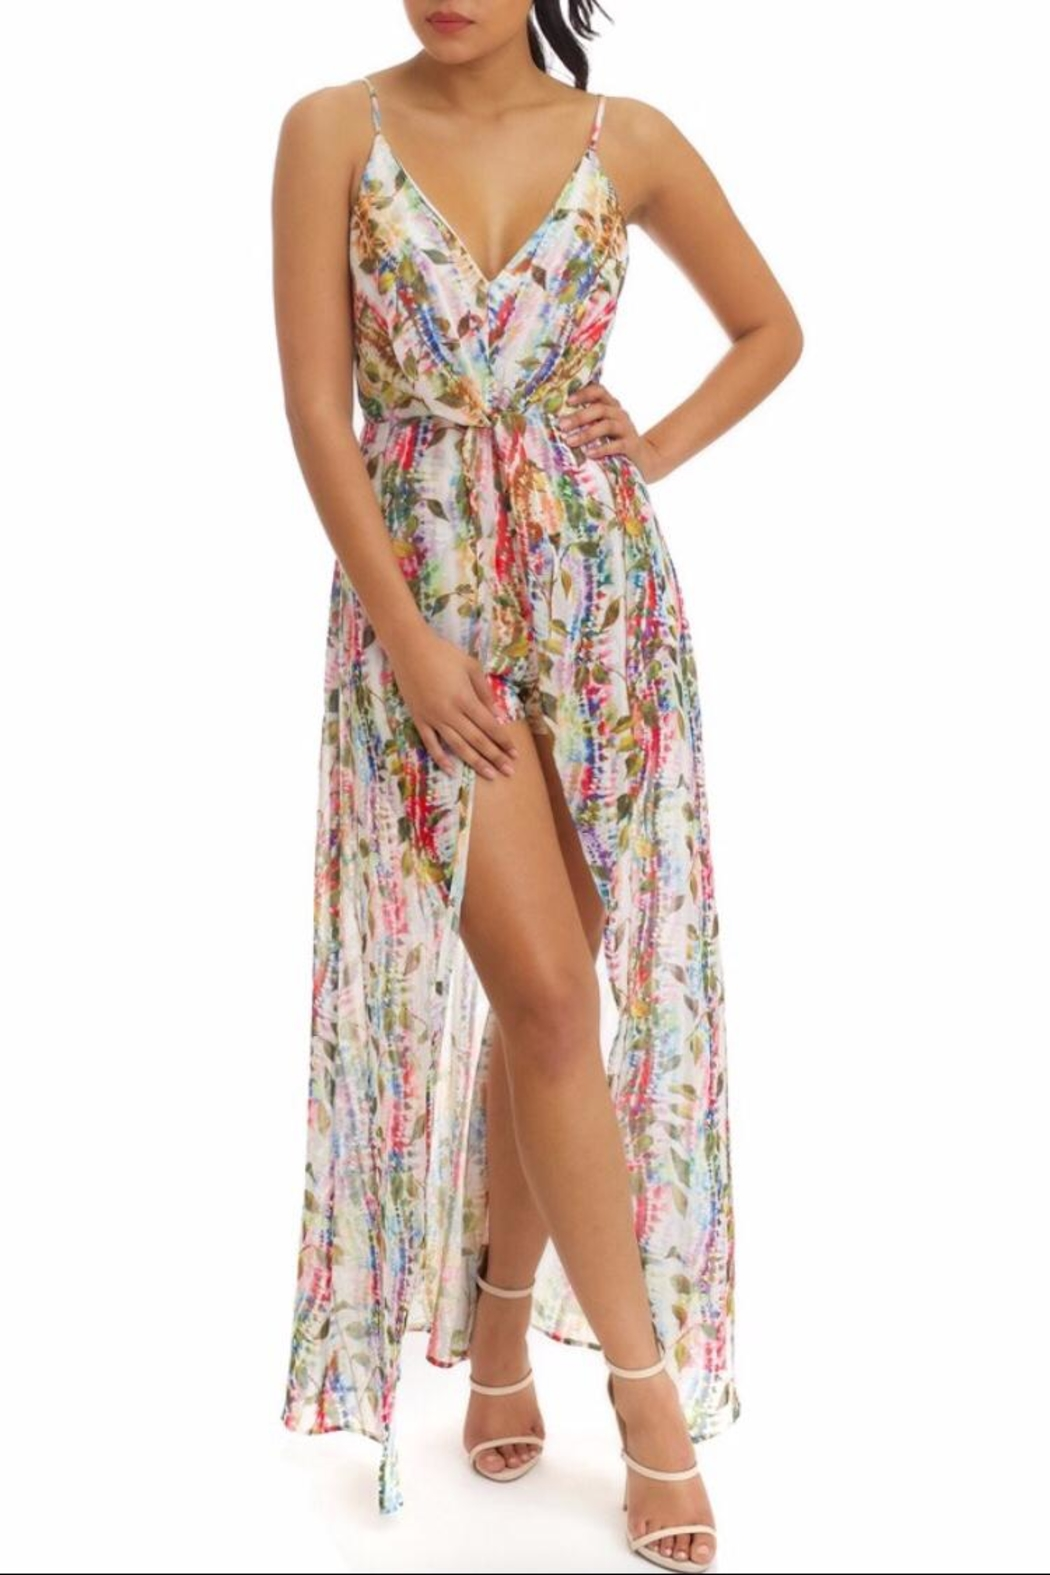 luxxel Tie-Dye Chiffon Dress - Main Image